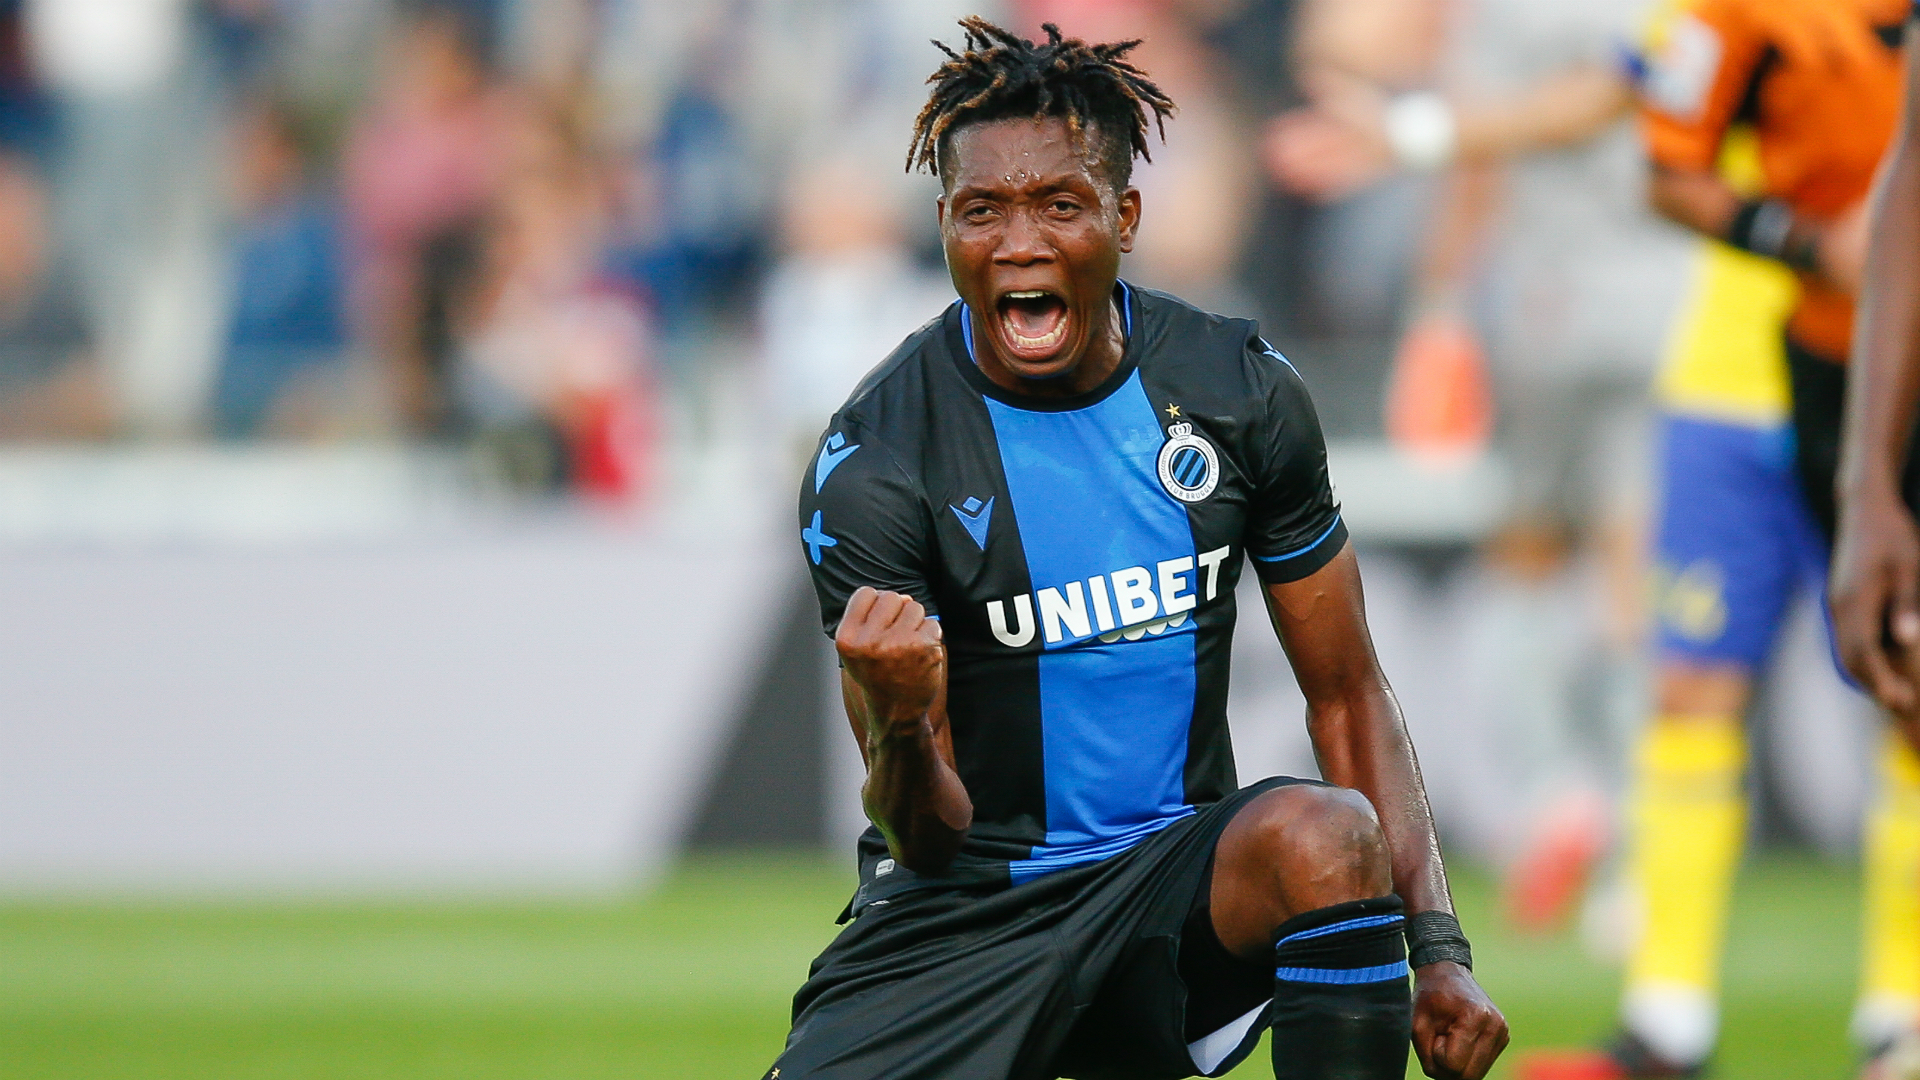 Okereke backs Club Brugge to make history in Champions League